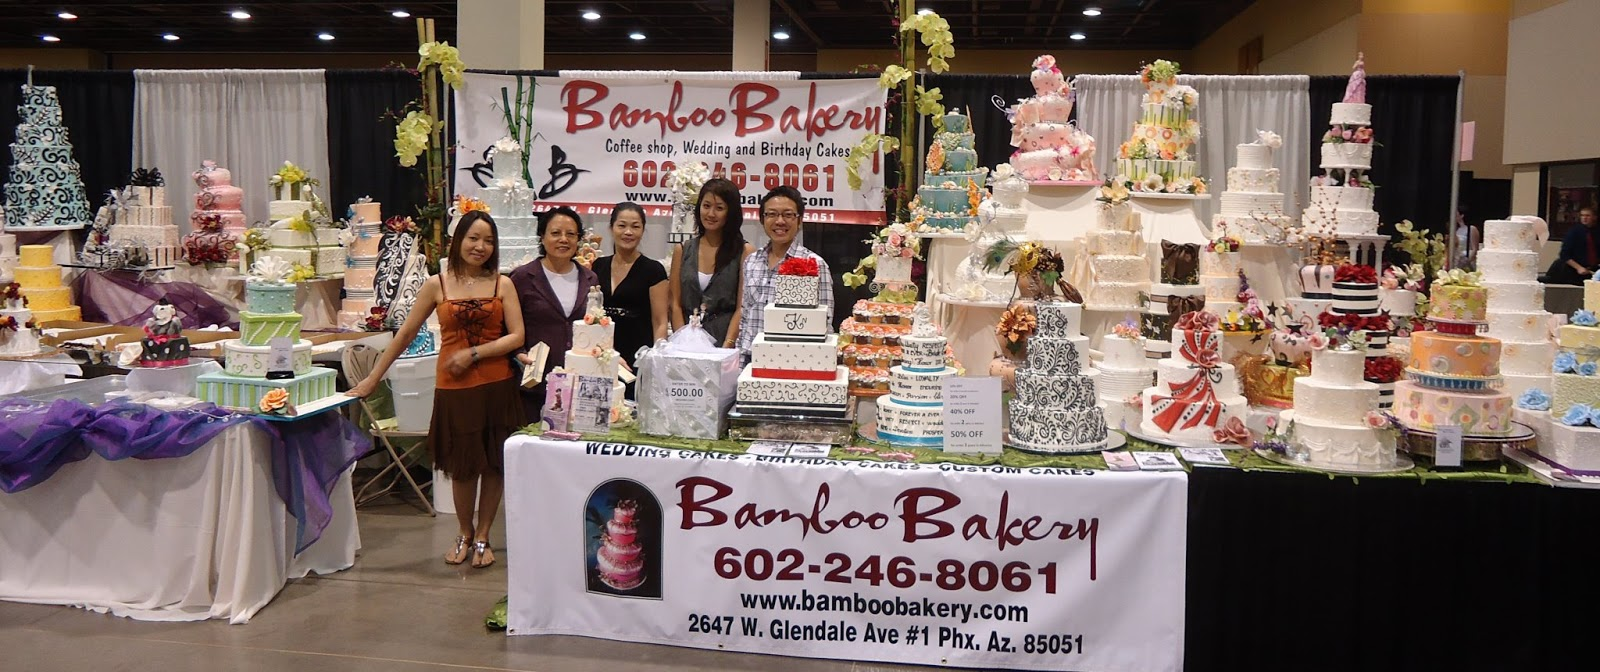 Bamboo Bakery 6022468061 Bamboo Bakery Bridal EXPO Thursday JULY